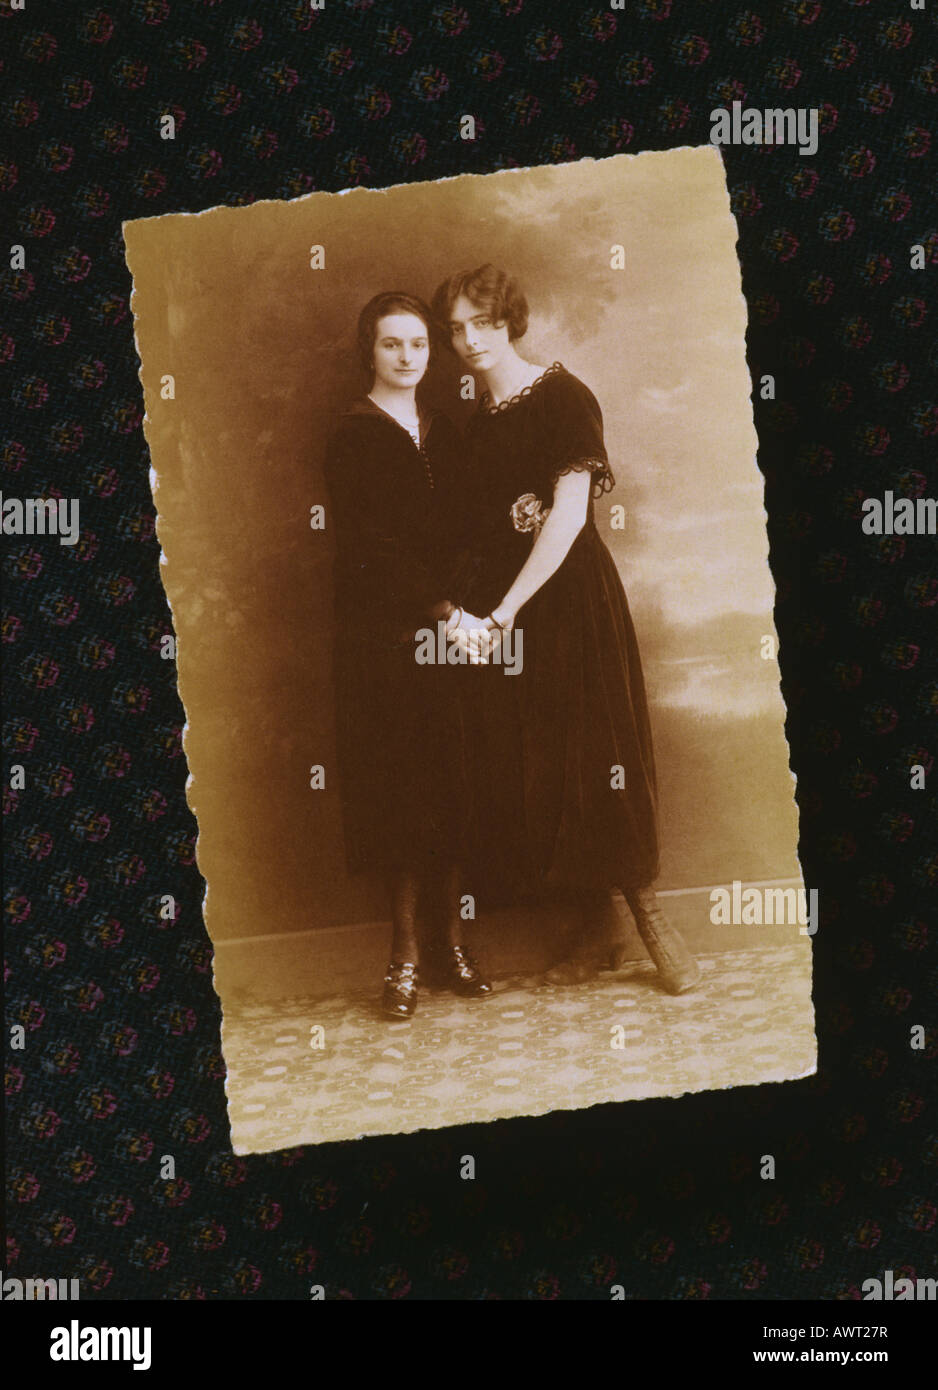 1920's vintage photo with 2 young women holding hands, twenties antique sisters photo, - Stock Image